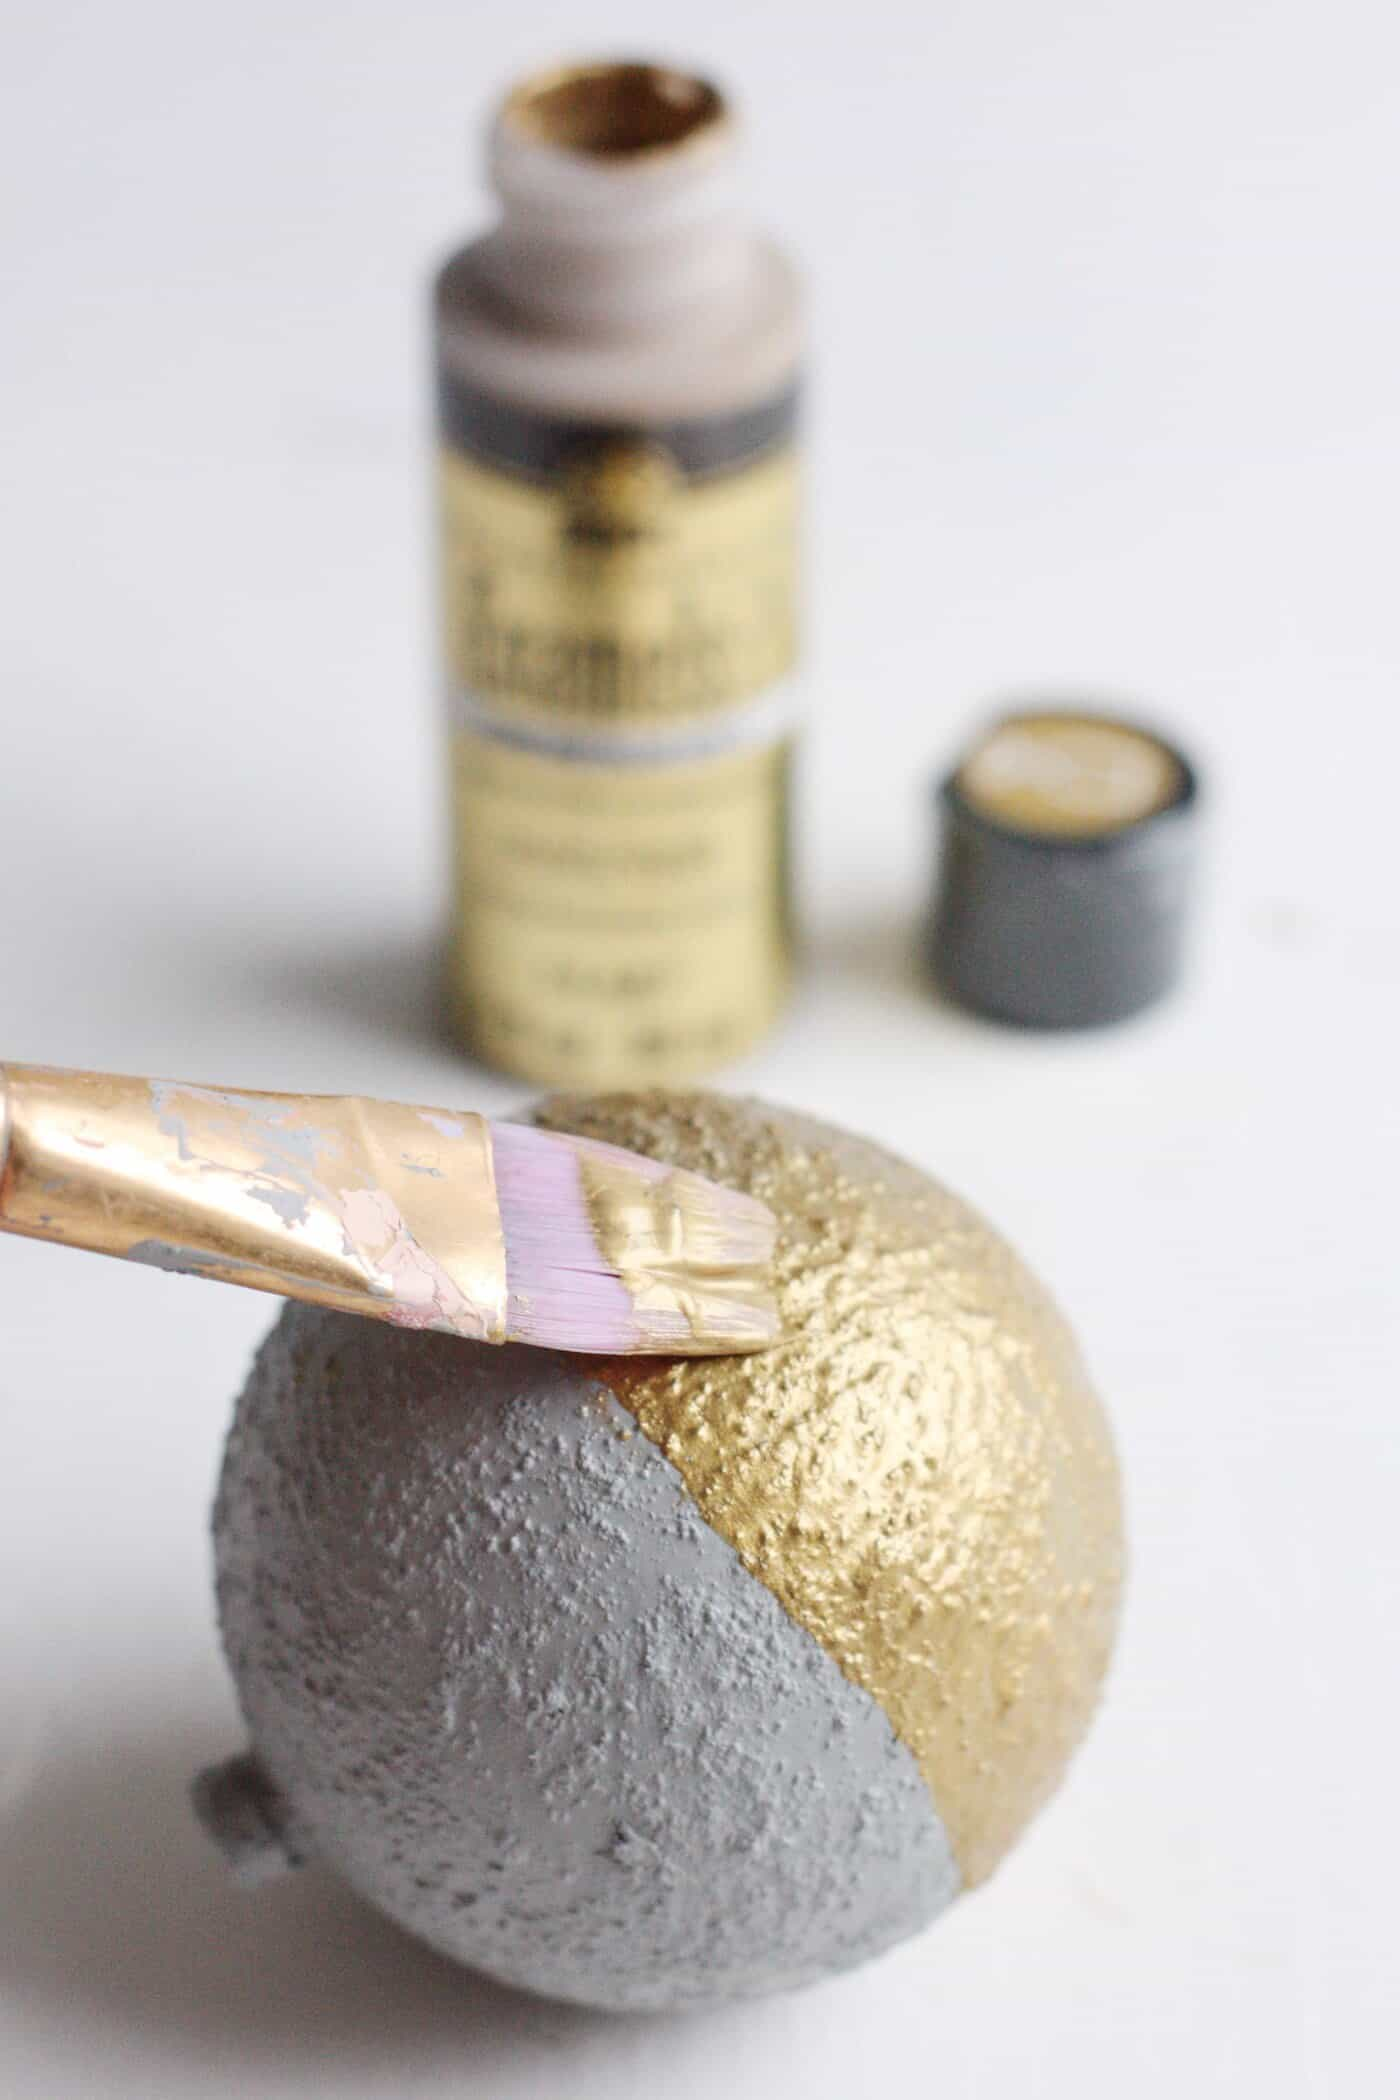 Painting the bottom half of a cement ornament with metallic gold paint